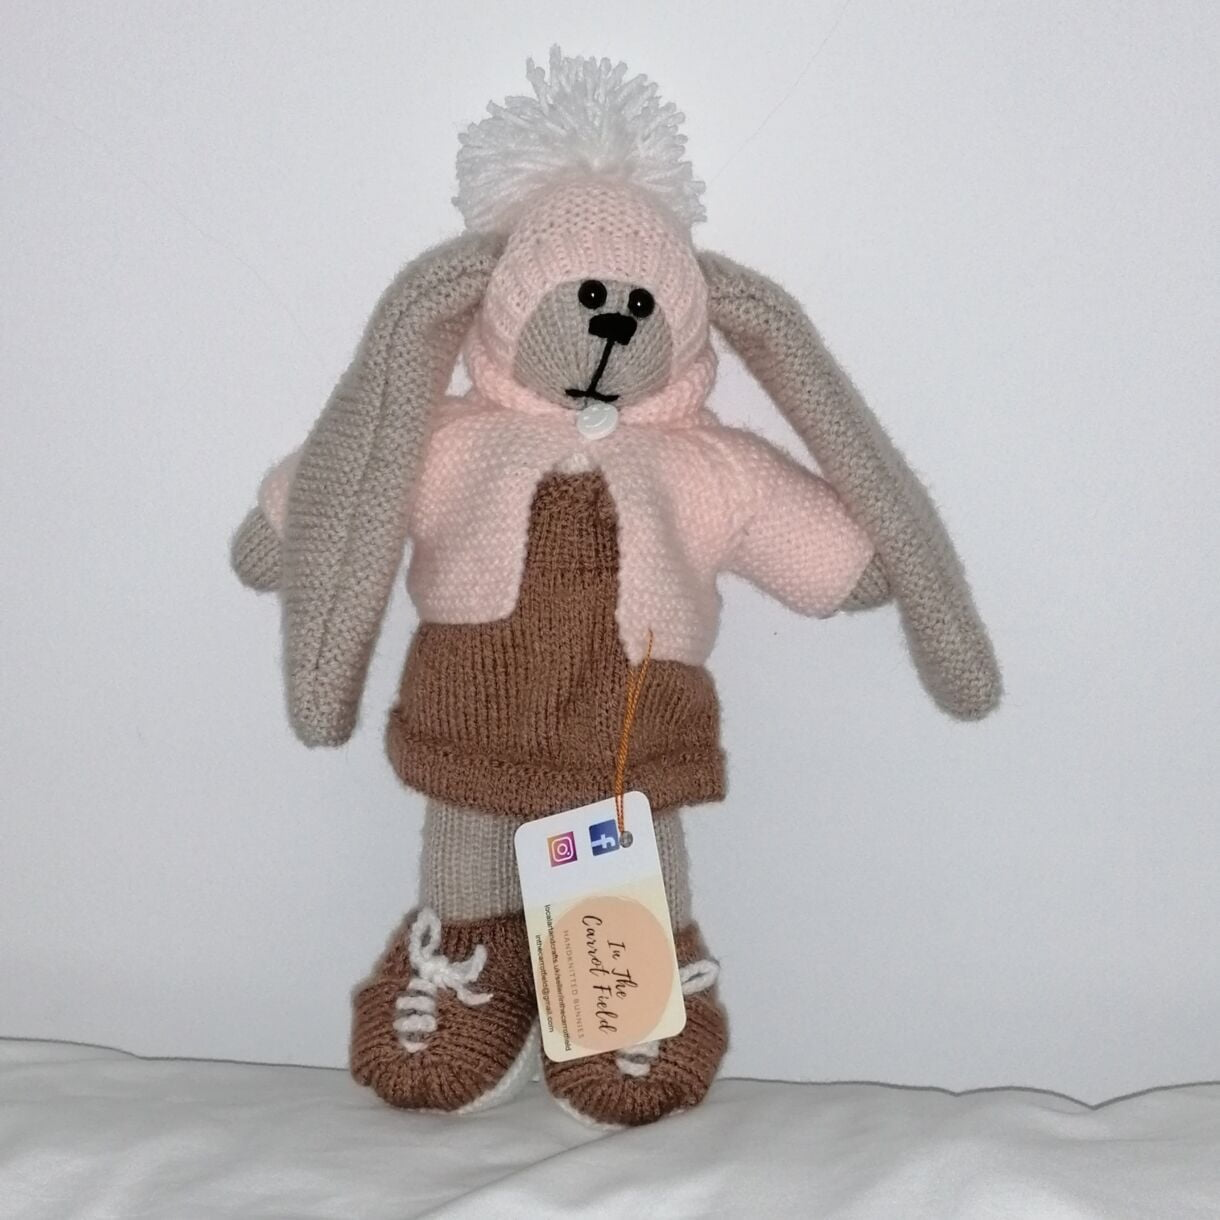 Beautifully Hand Knitted Bunny Girl in a Latte Pinafore and Shoes and a Co-ordinated Hat and Hooded Jacket